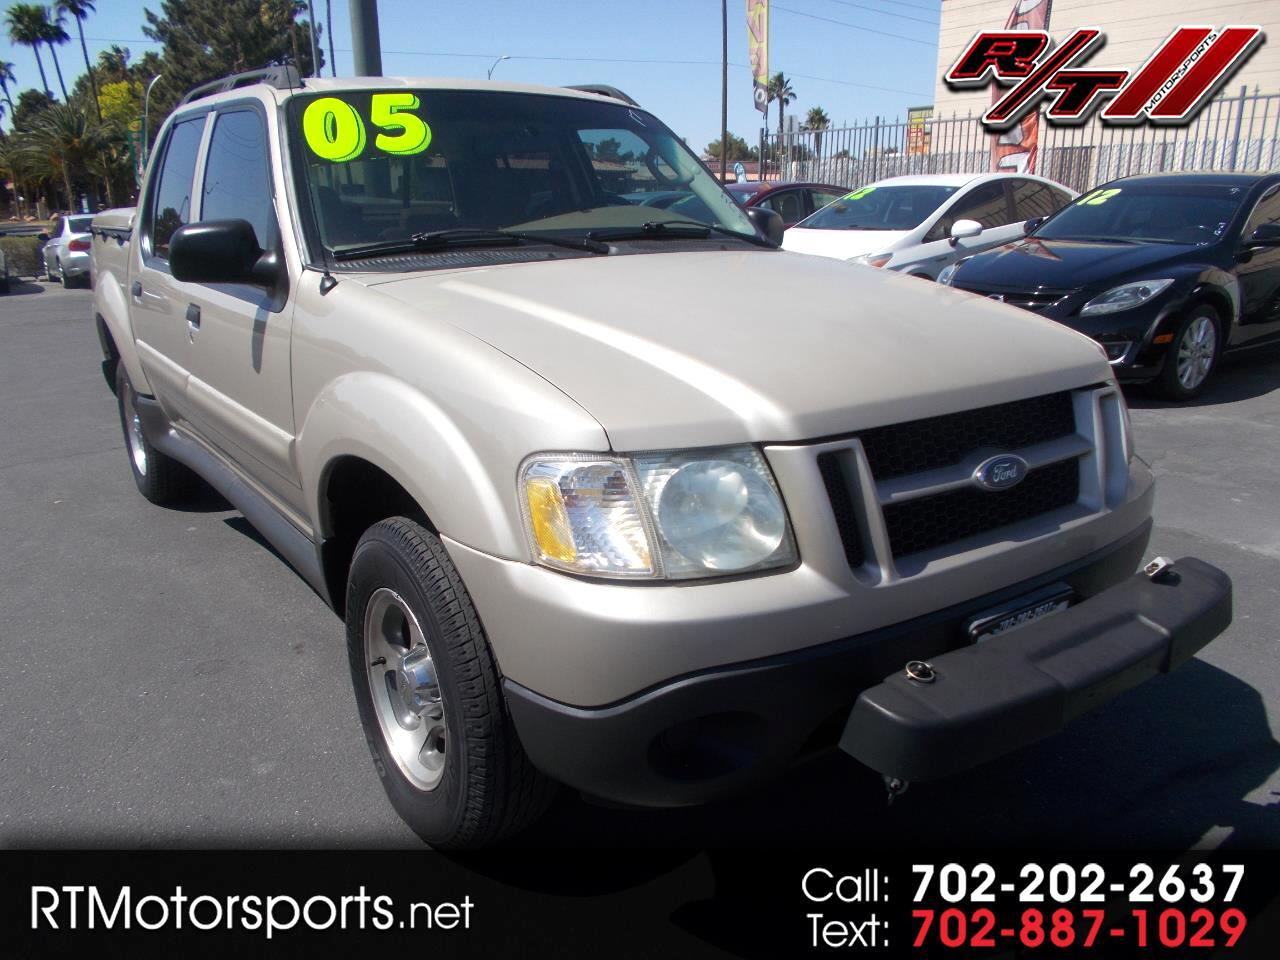 Ford Explorer Sport Trac Adrenalin 4WD 2005